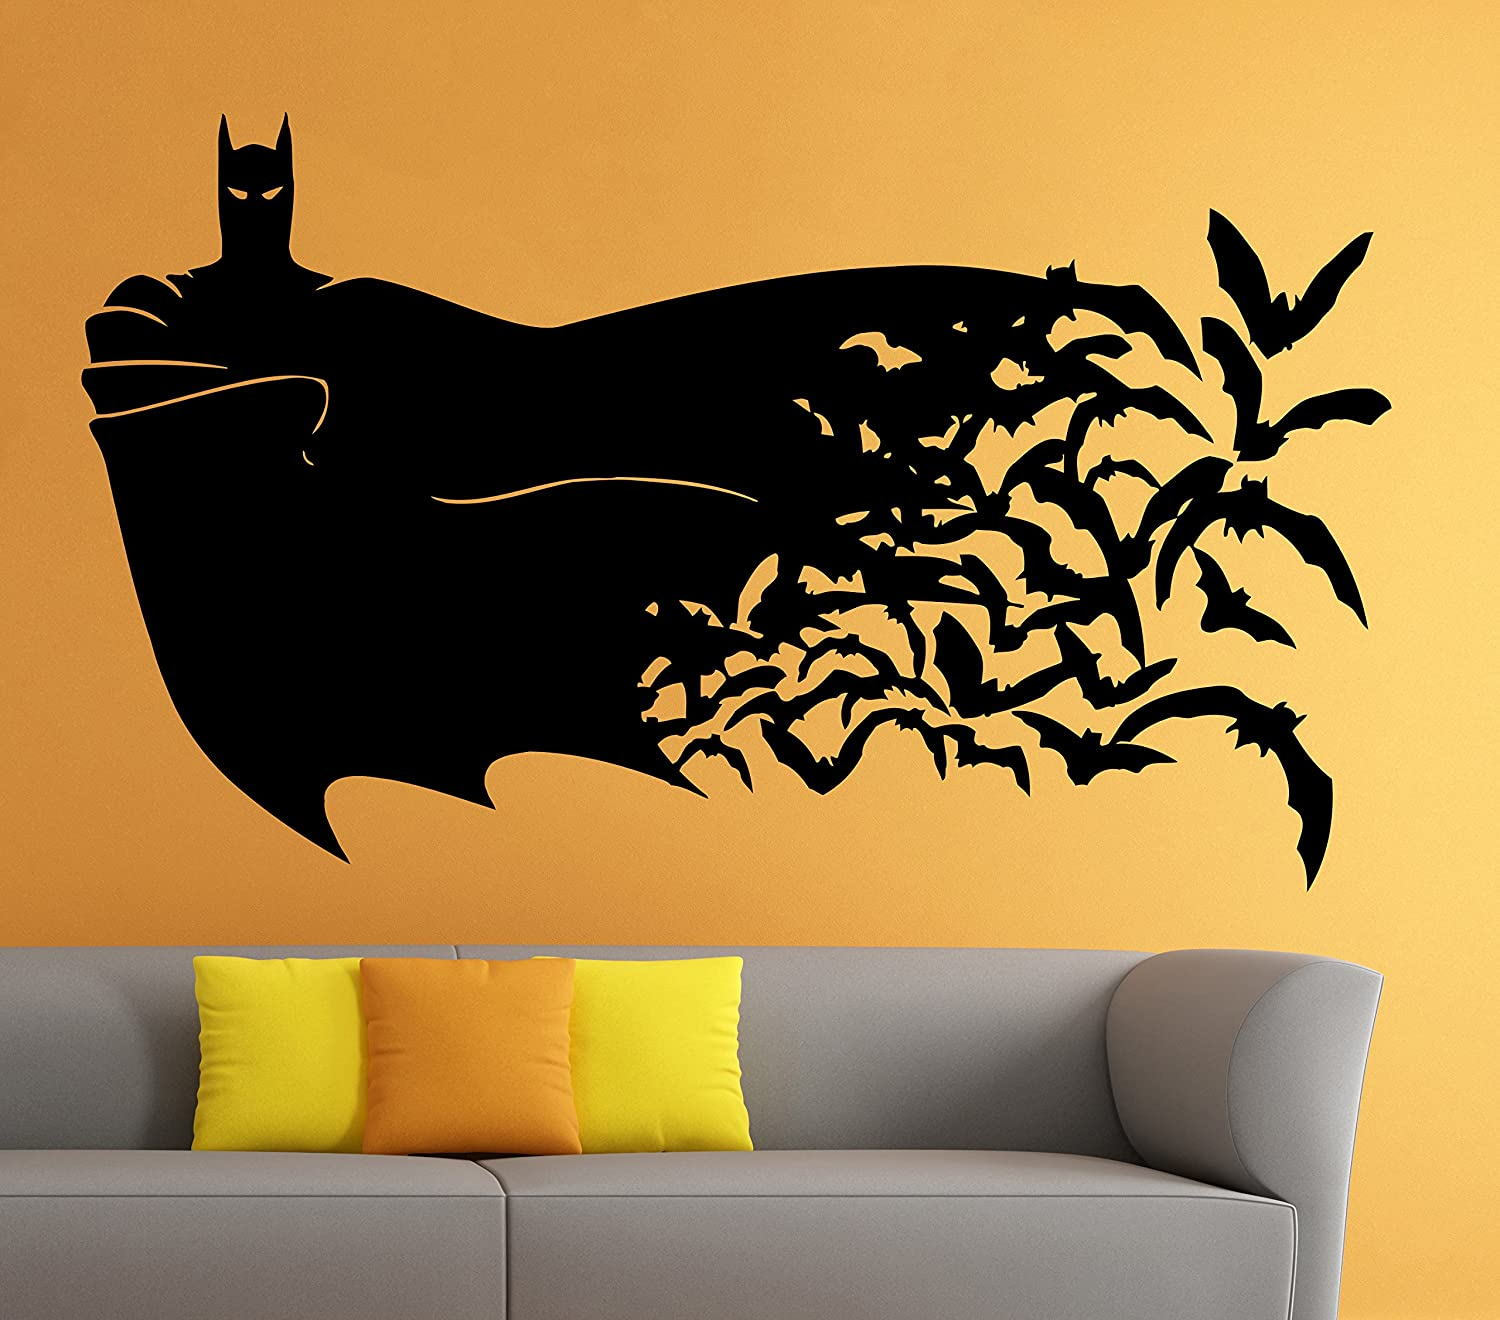 Amazon.com: Batman Wall Vinyl Decal Movie Cartoon Sticker Art Mural ...